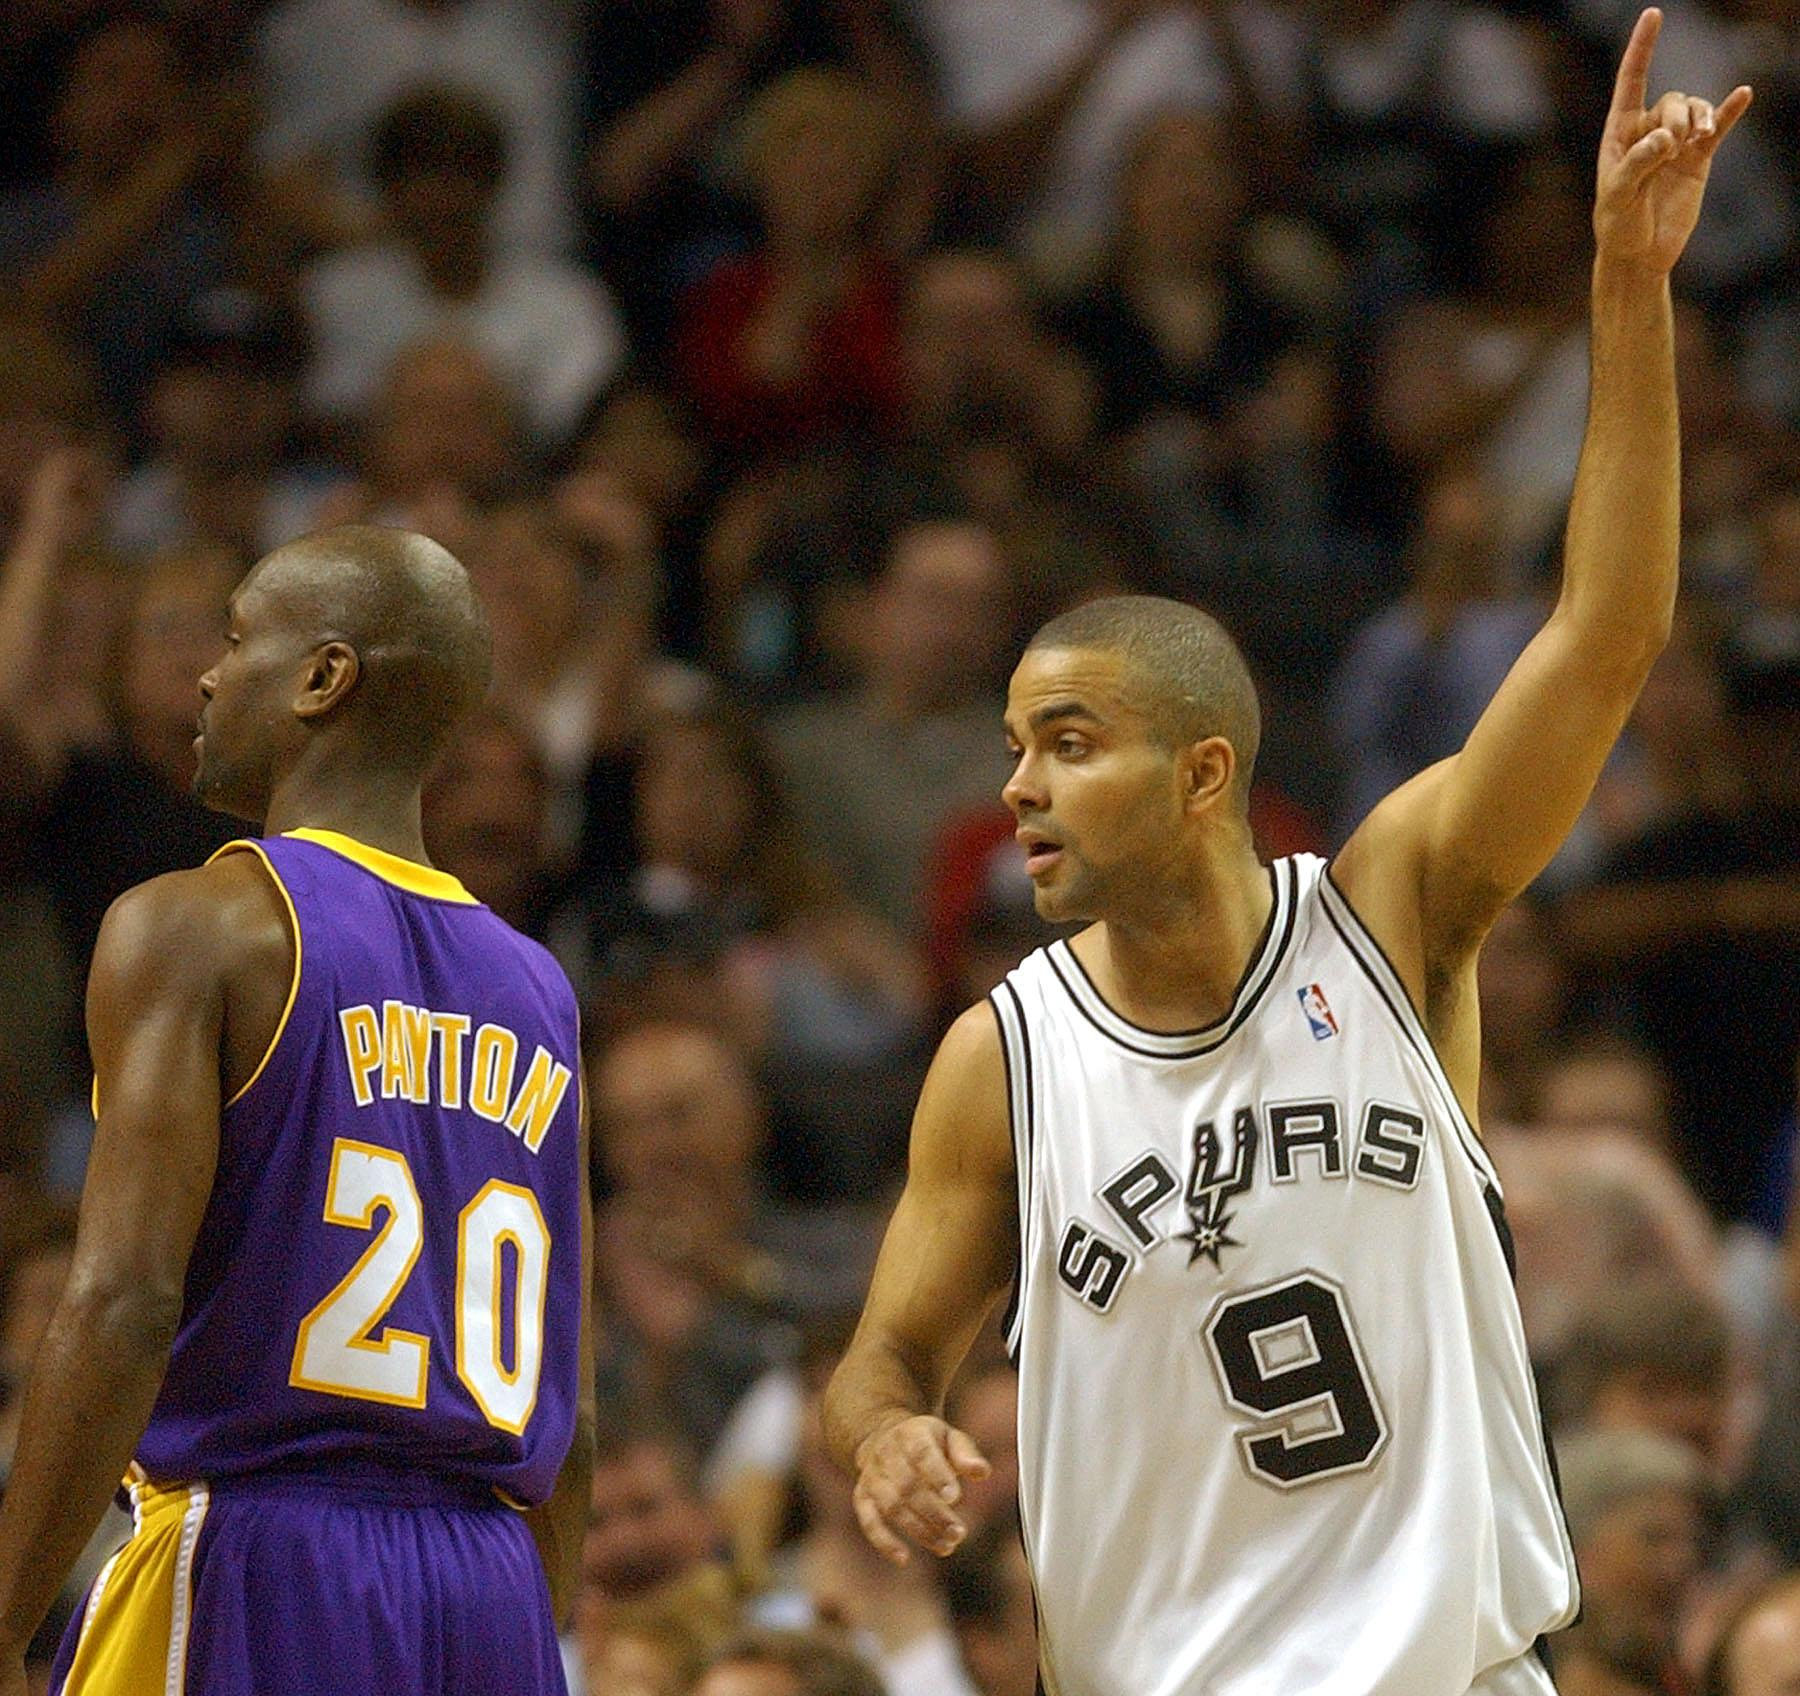 Top 5 for No. 9: Tony Parker's best moments with the Spurs